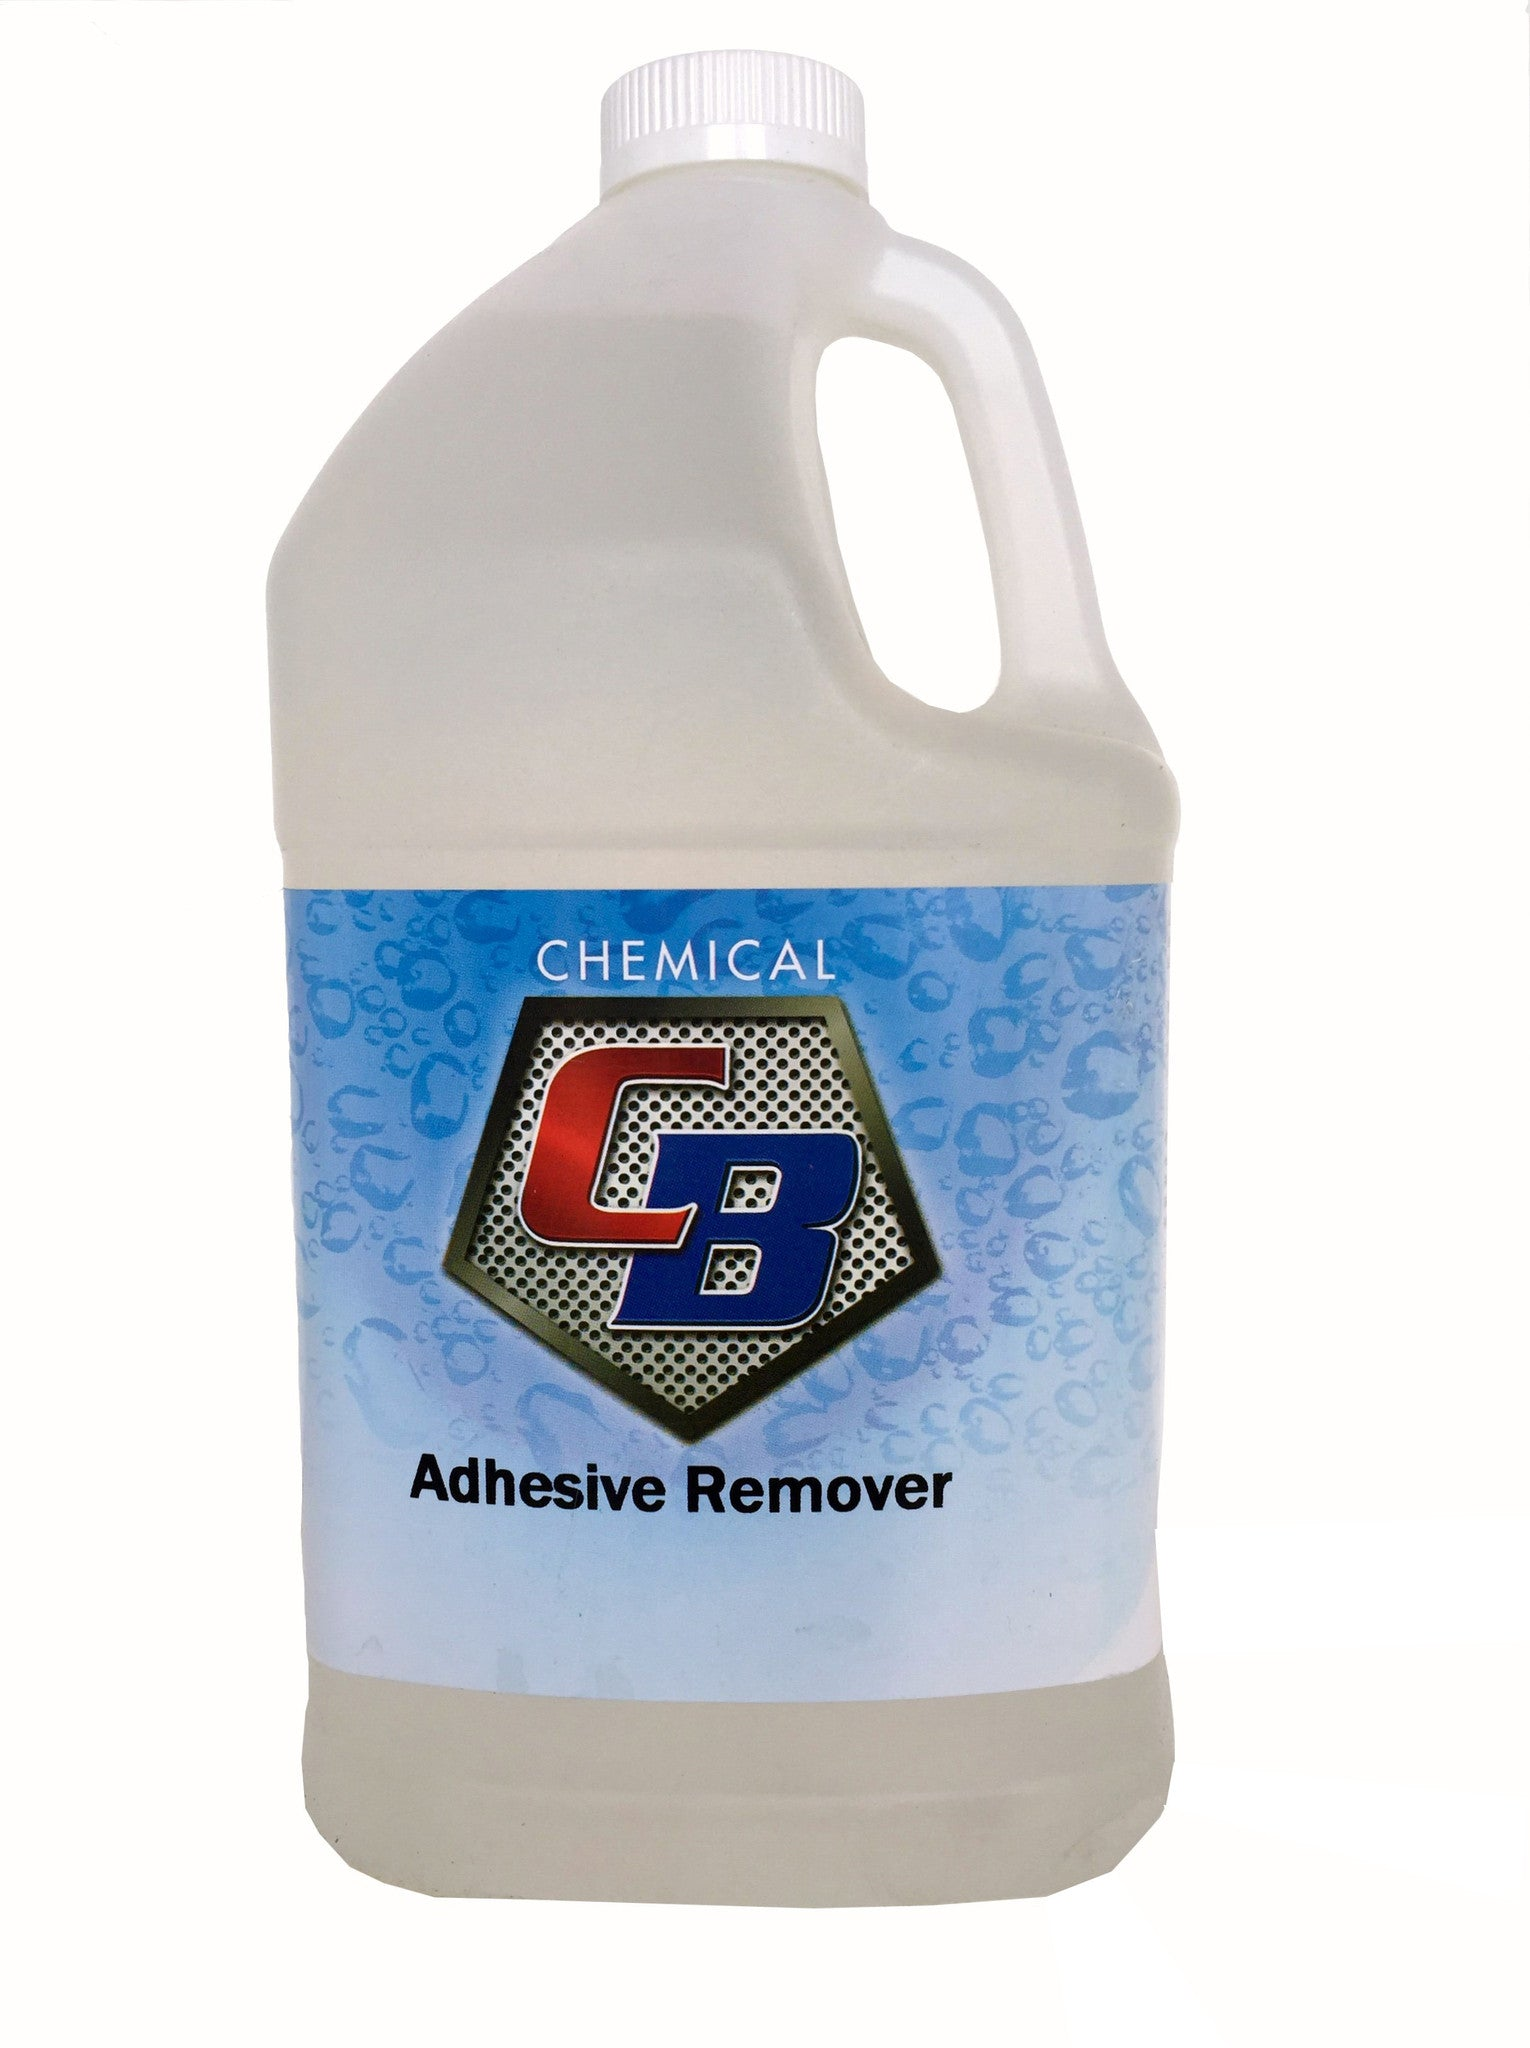 adhesive remover car detailing supplies c b chemical. Black Bedroom Furniture Sets. Home Design Ideas